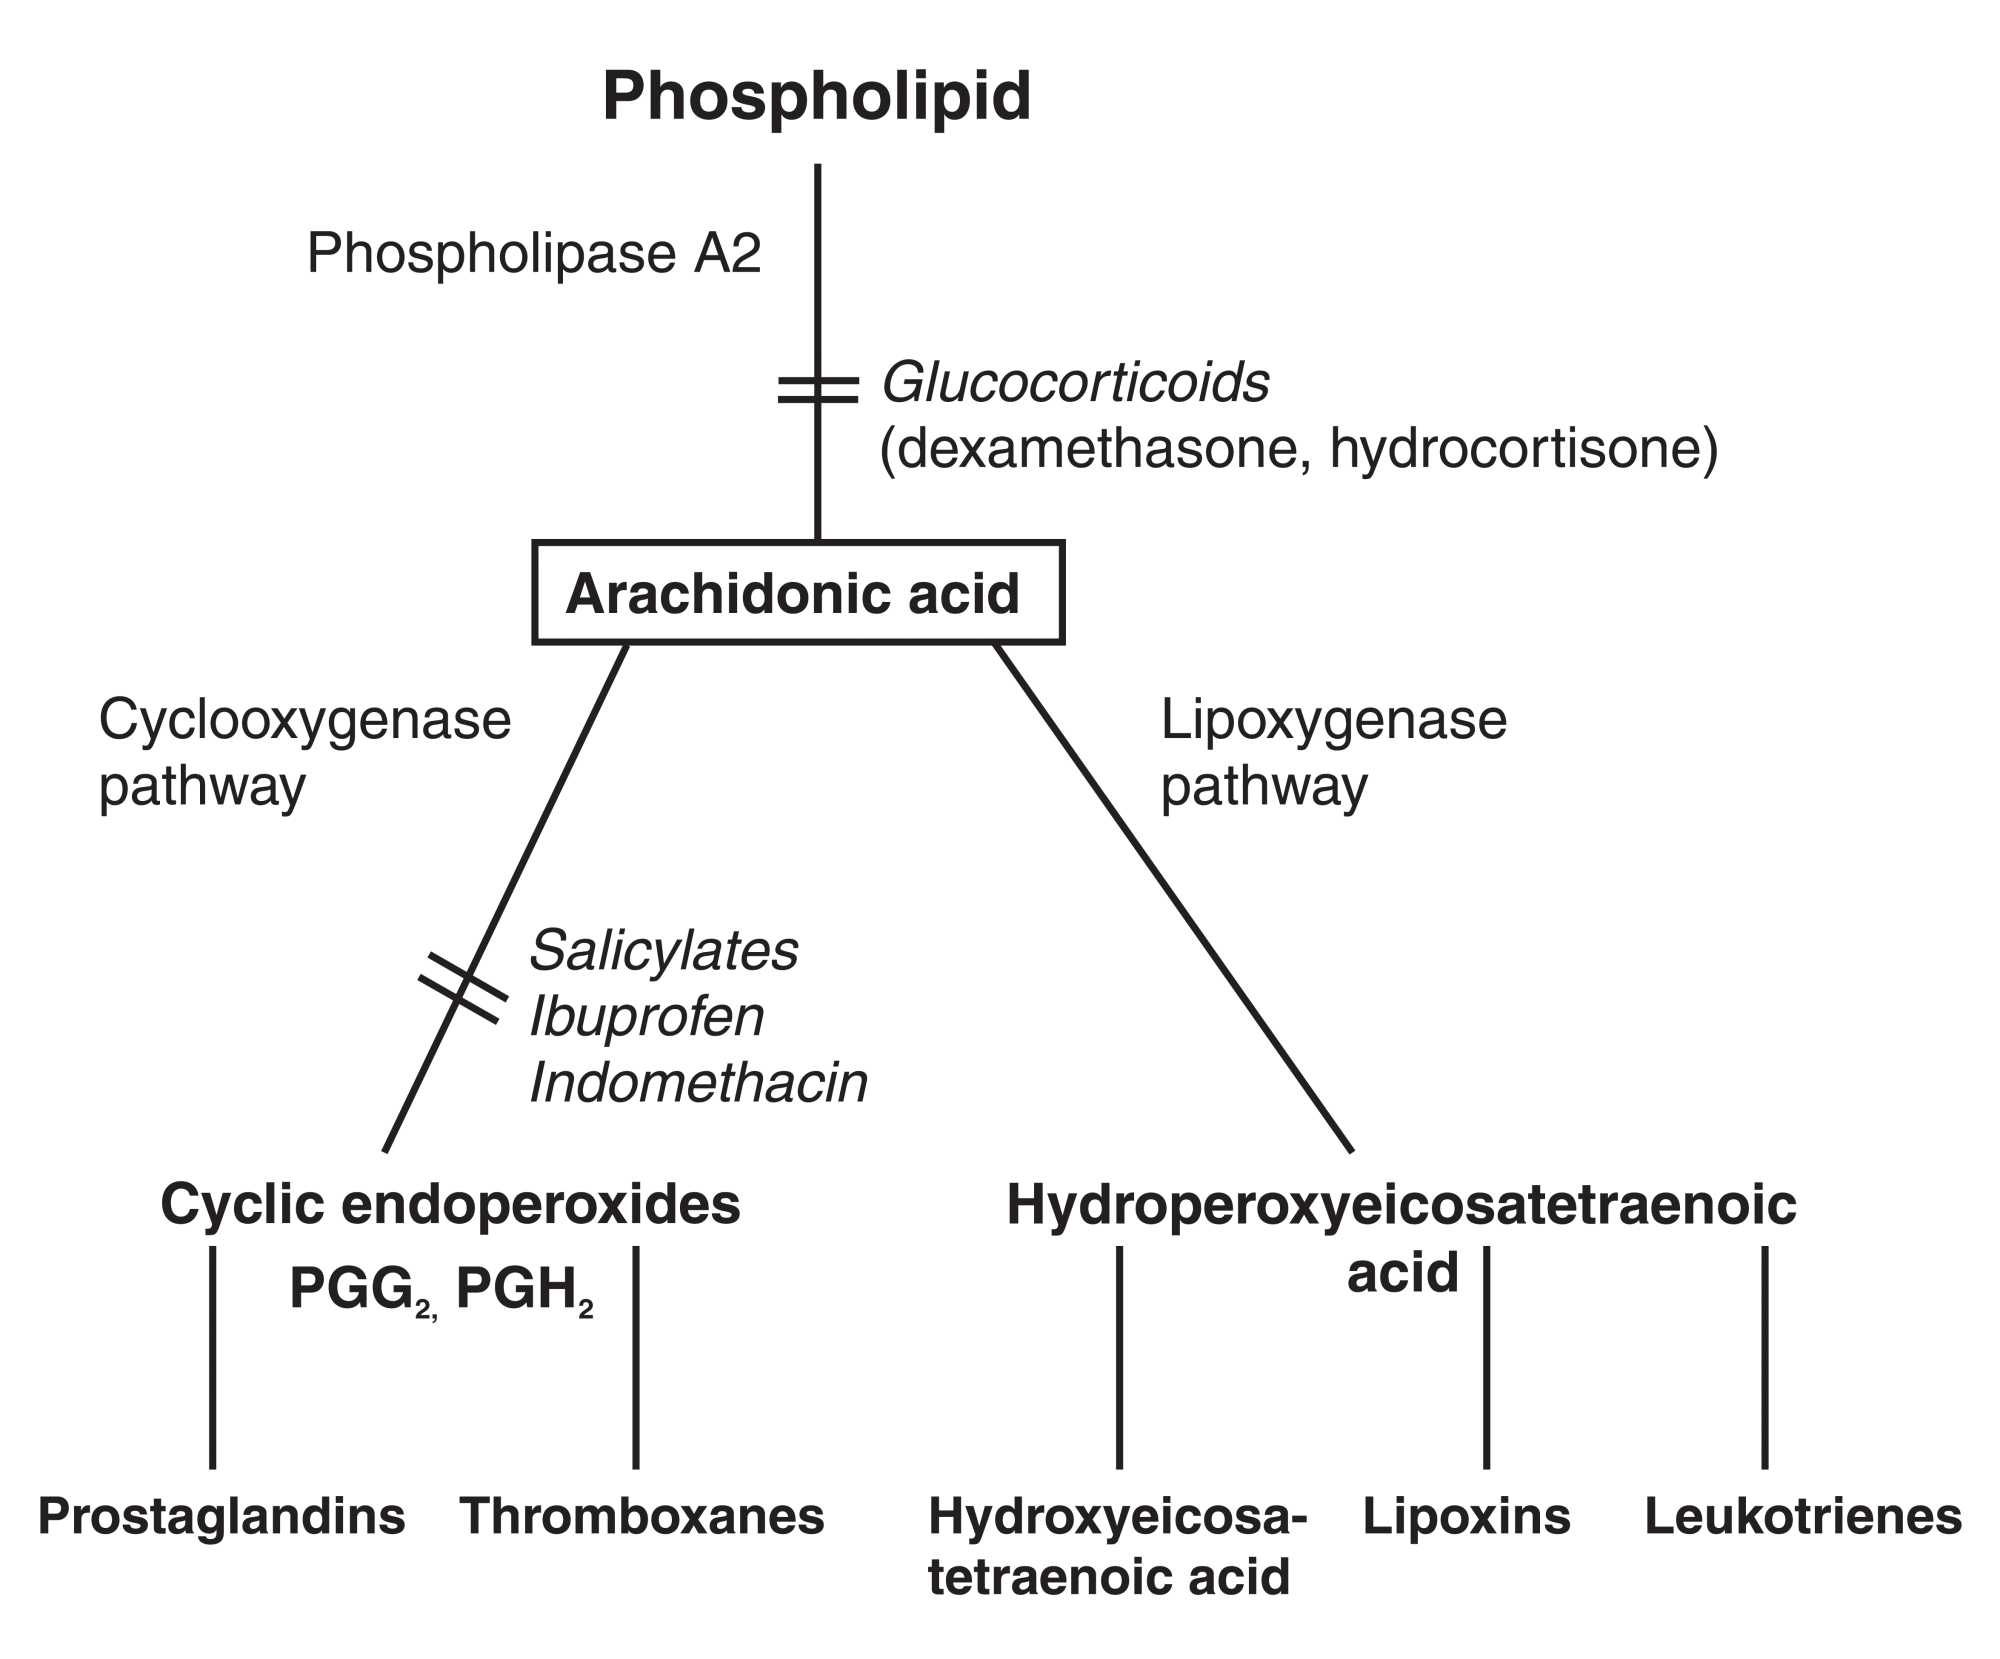 hight resolution of the arachidonic acid cascade and points of inhibition by nsaids the cyclooxygenase pathway and glucocorticoids the conversion of phos pholipid into